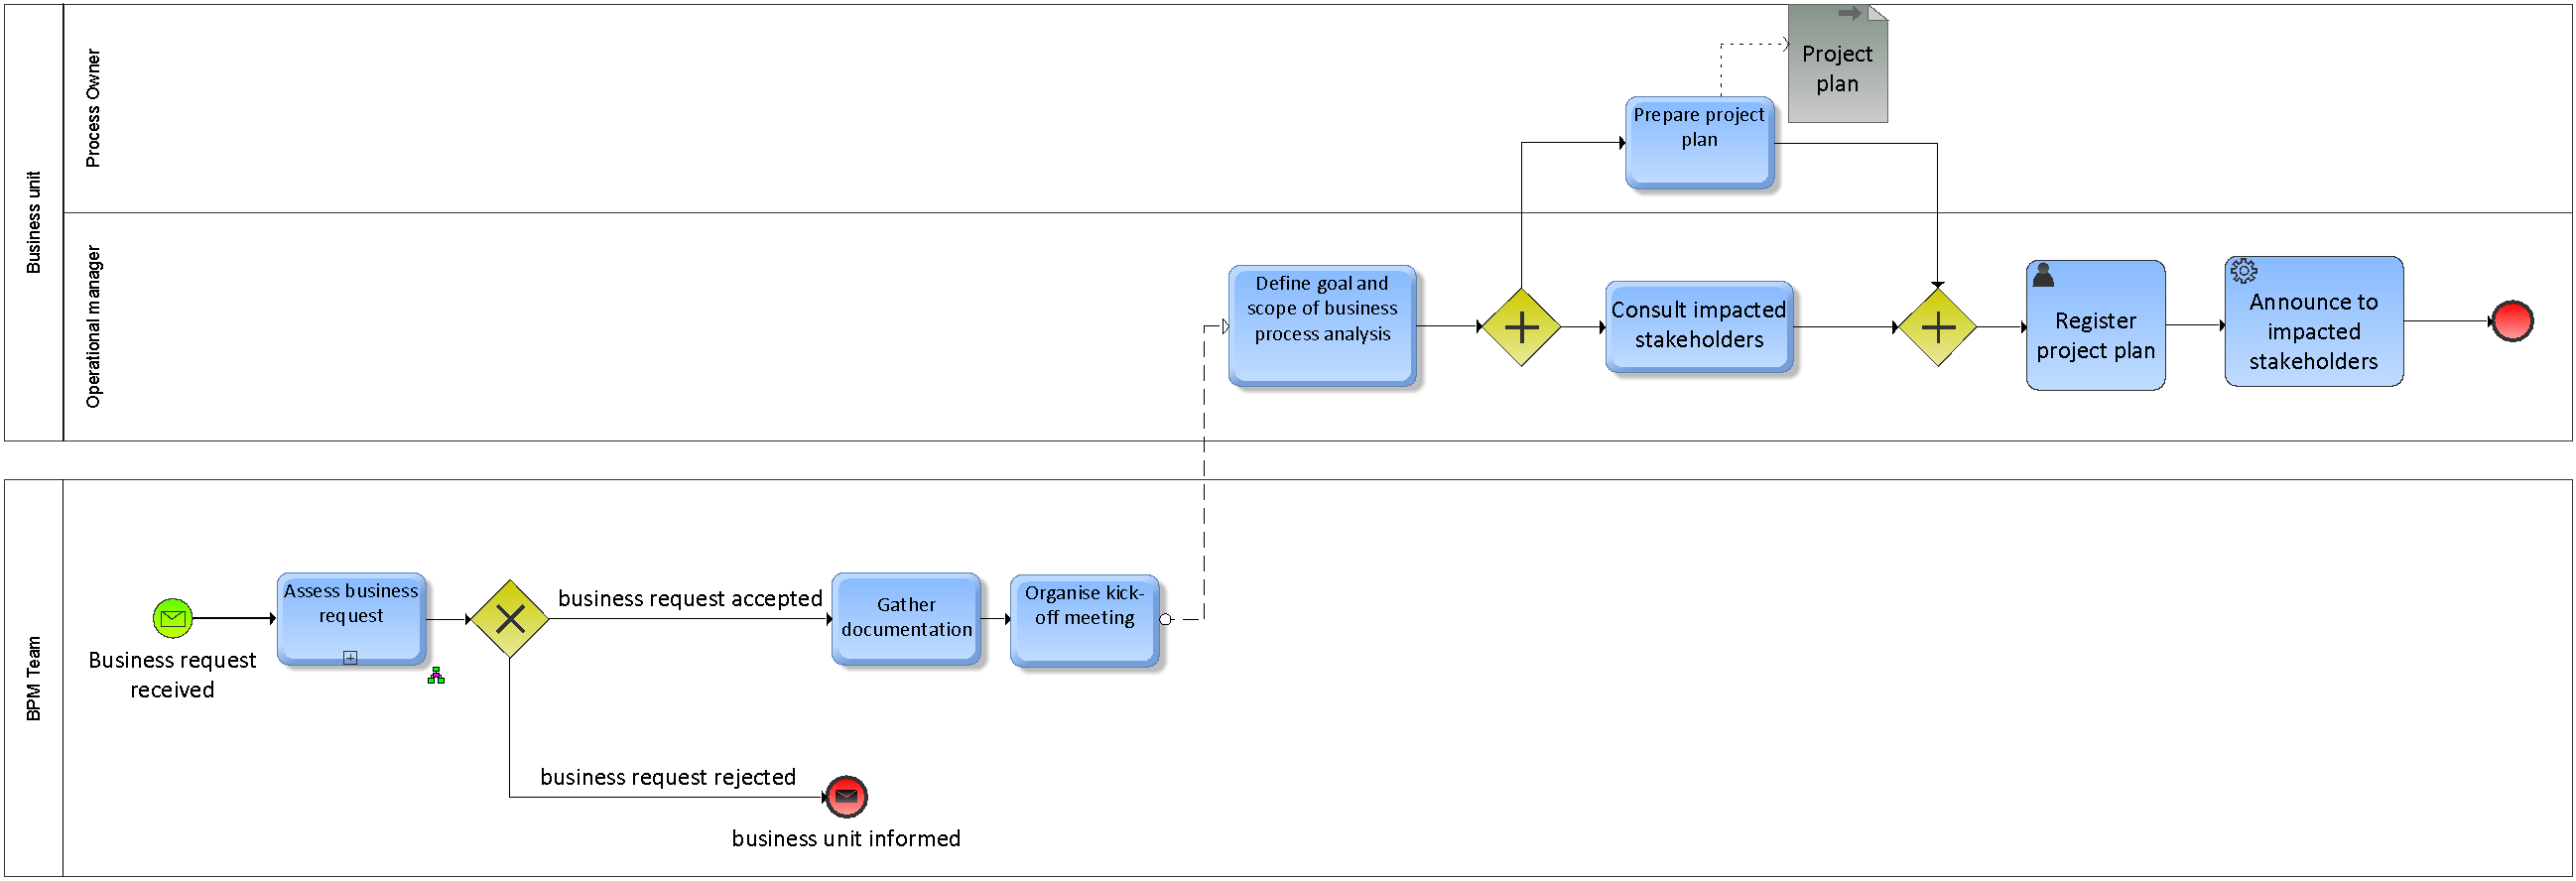 What Is The Difference Between Flow Charts And Bpmn R D Process Chart Bpm Initiate Project